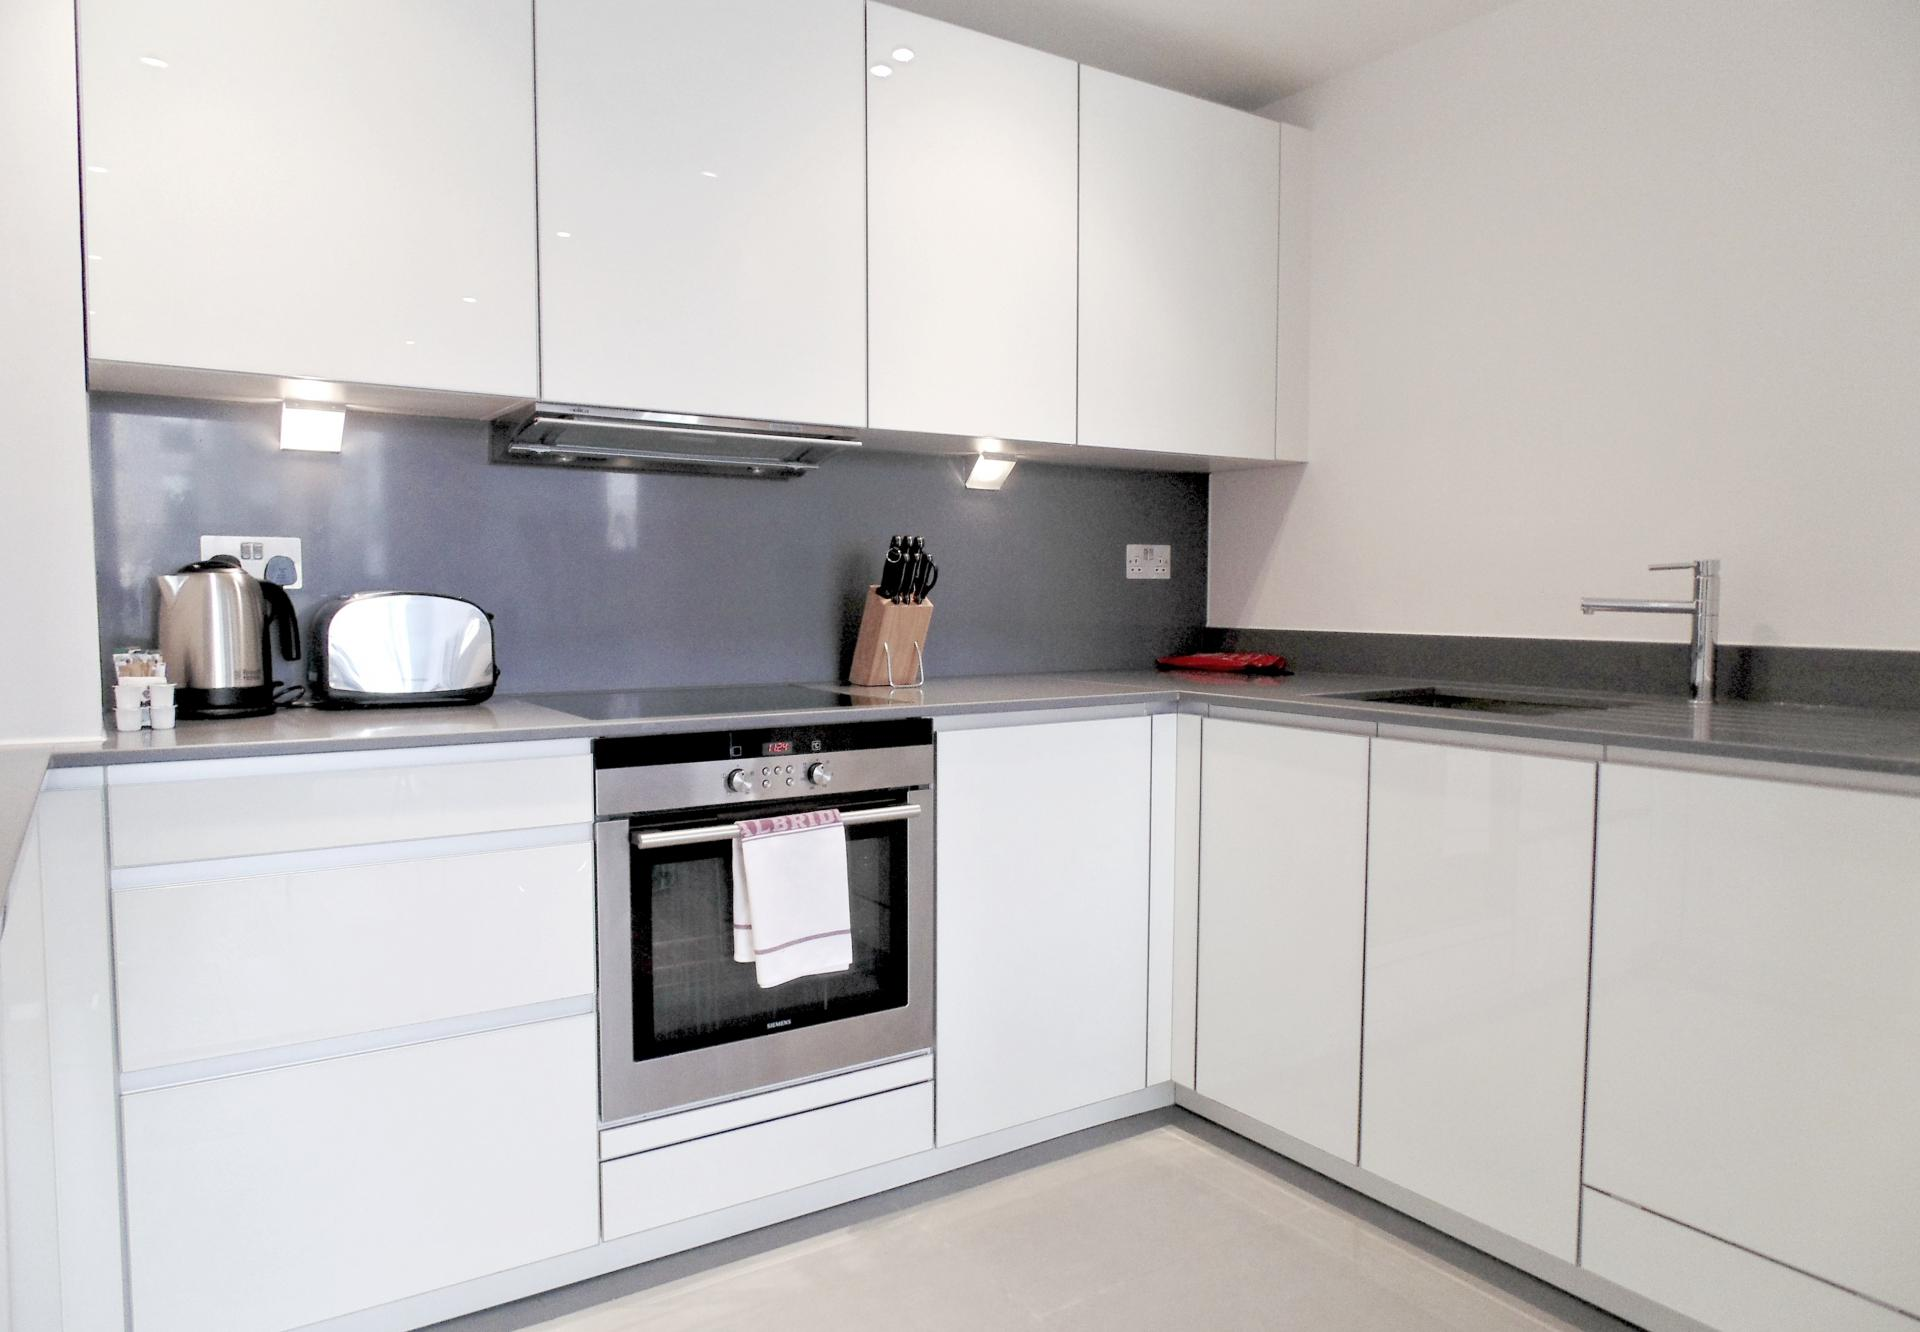 Oven at Still Life Tower Hill Deluxe, Whitechapel, London - Citybase Apartments